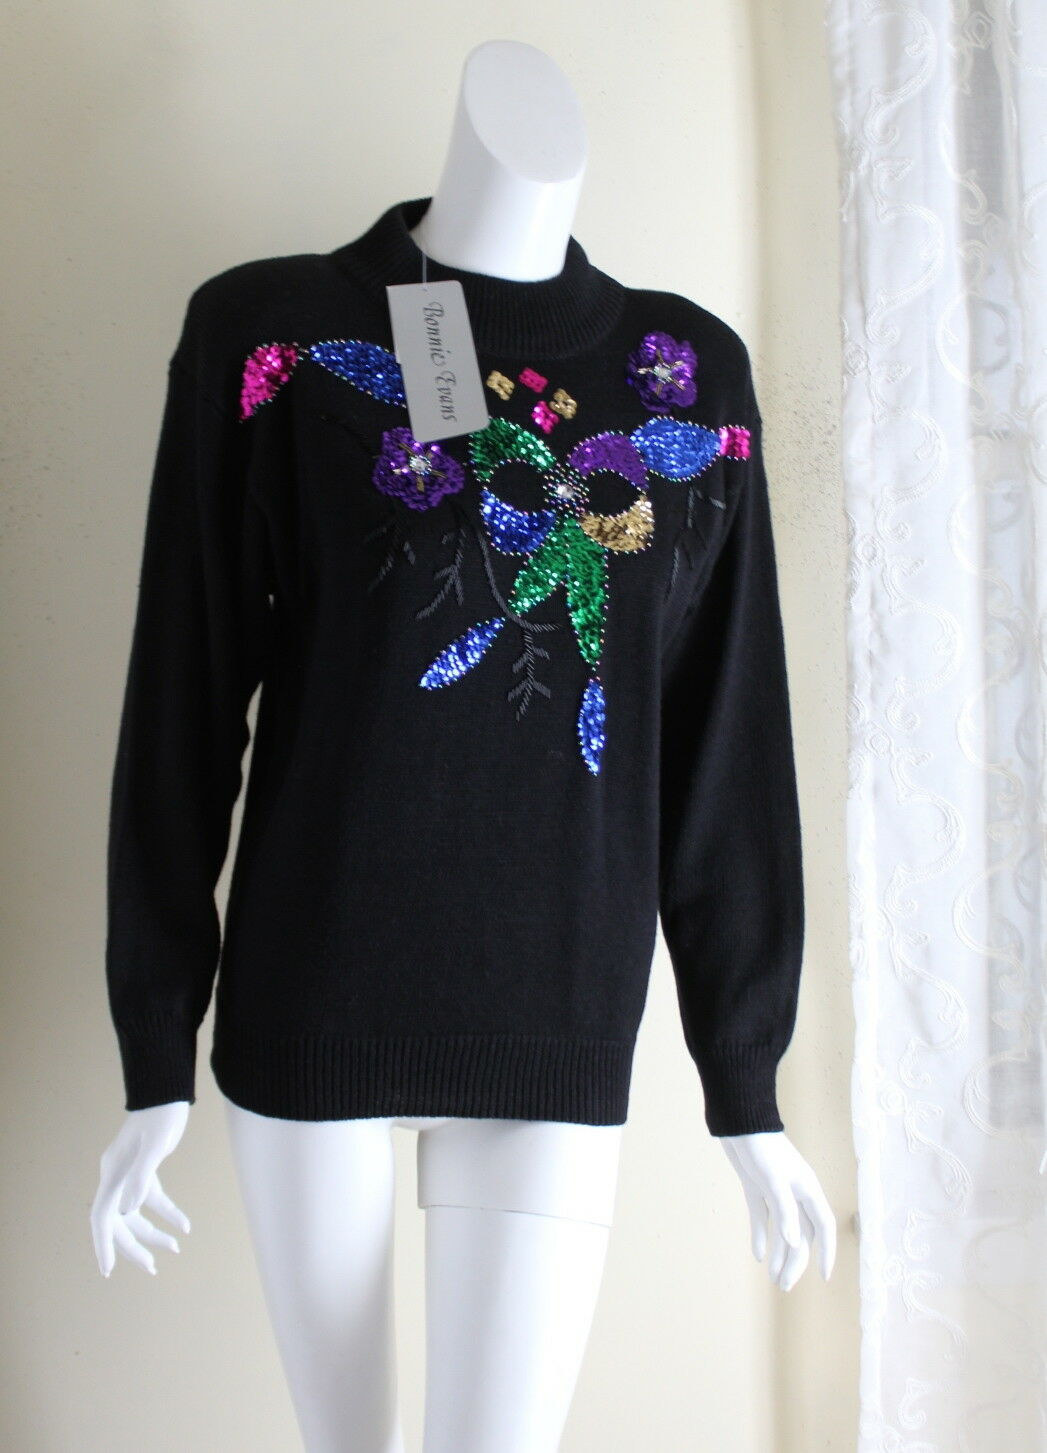 NWT Bonnie Evans -Sz S Funky Art Sequined Floral Party Deadstock Mock Turtleneck